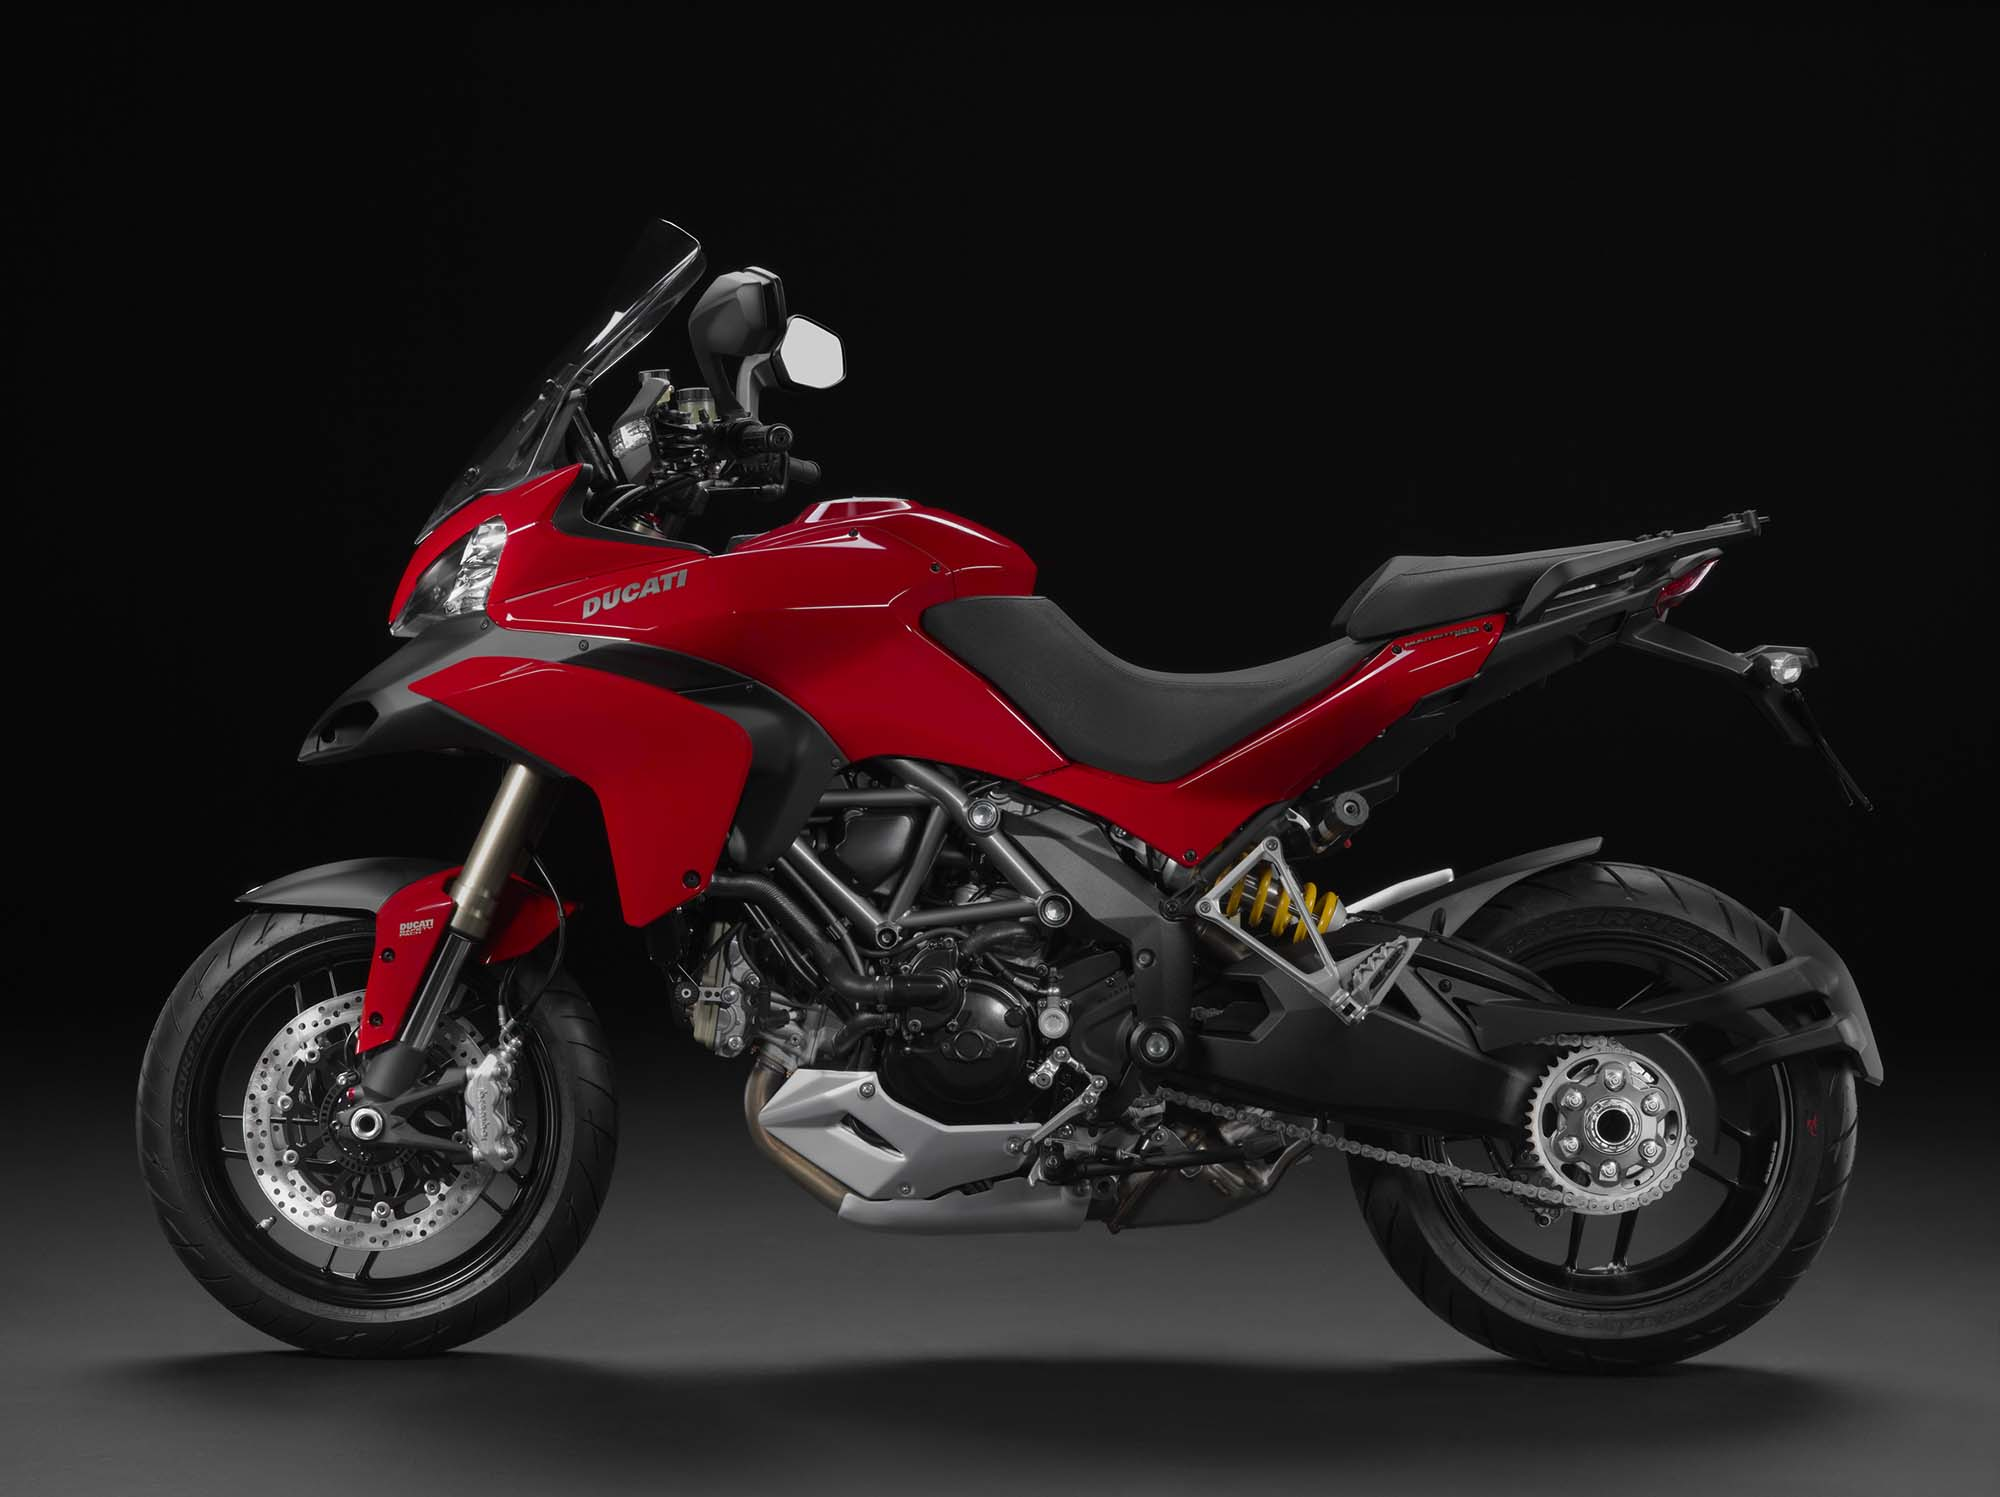 69 Photos Of The 2013 Ducati Multistrada 1200